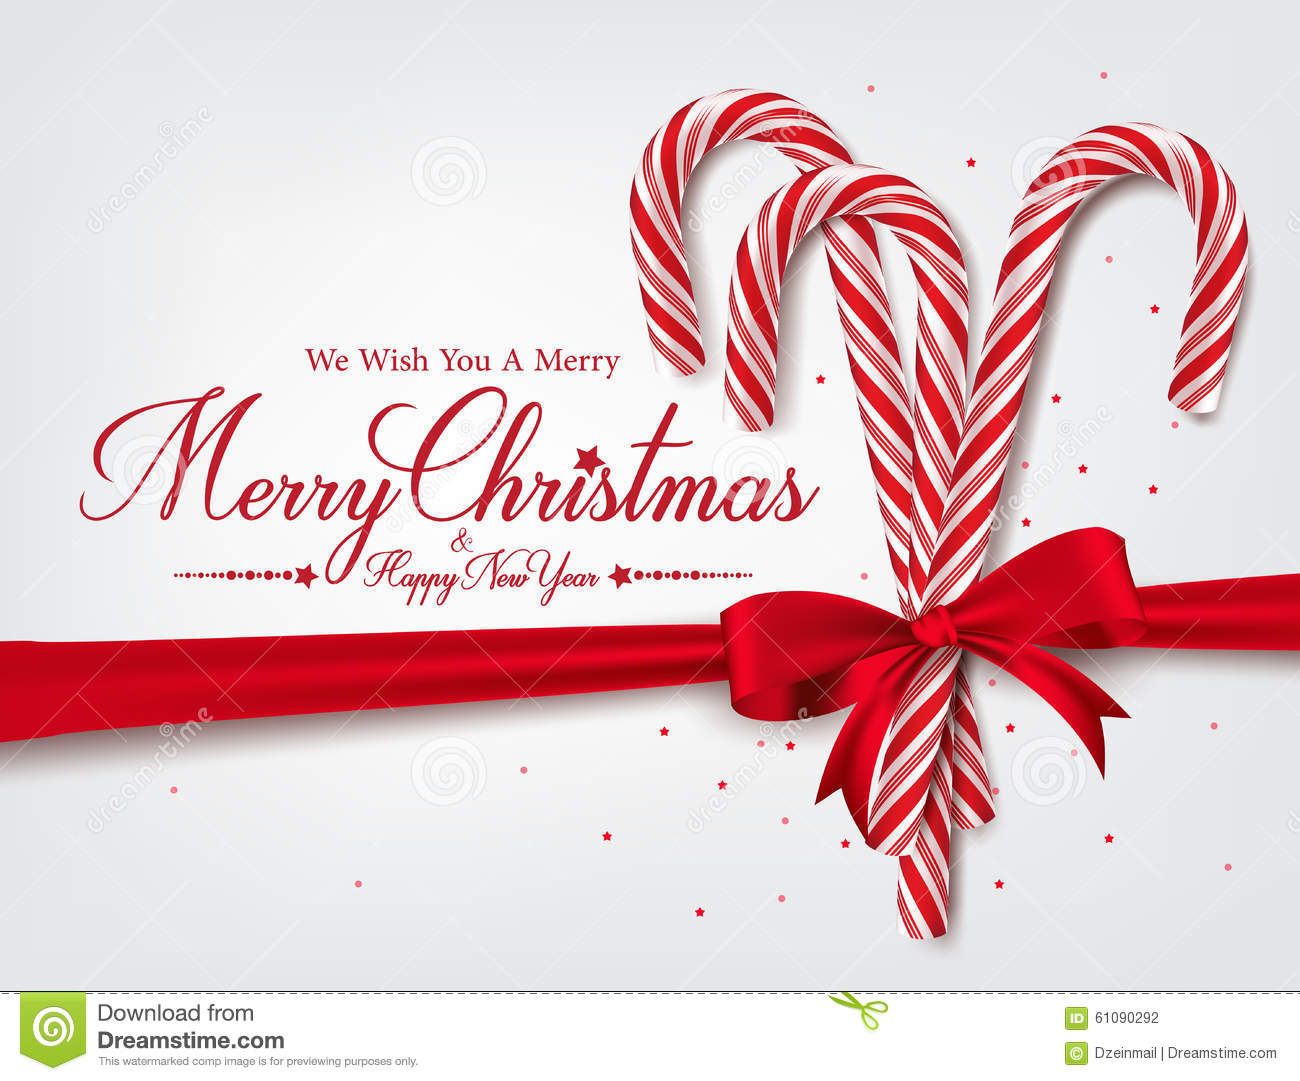 Merry Christmas Greetings In Realistic 3D Candy Cane Stock